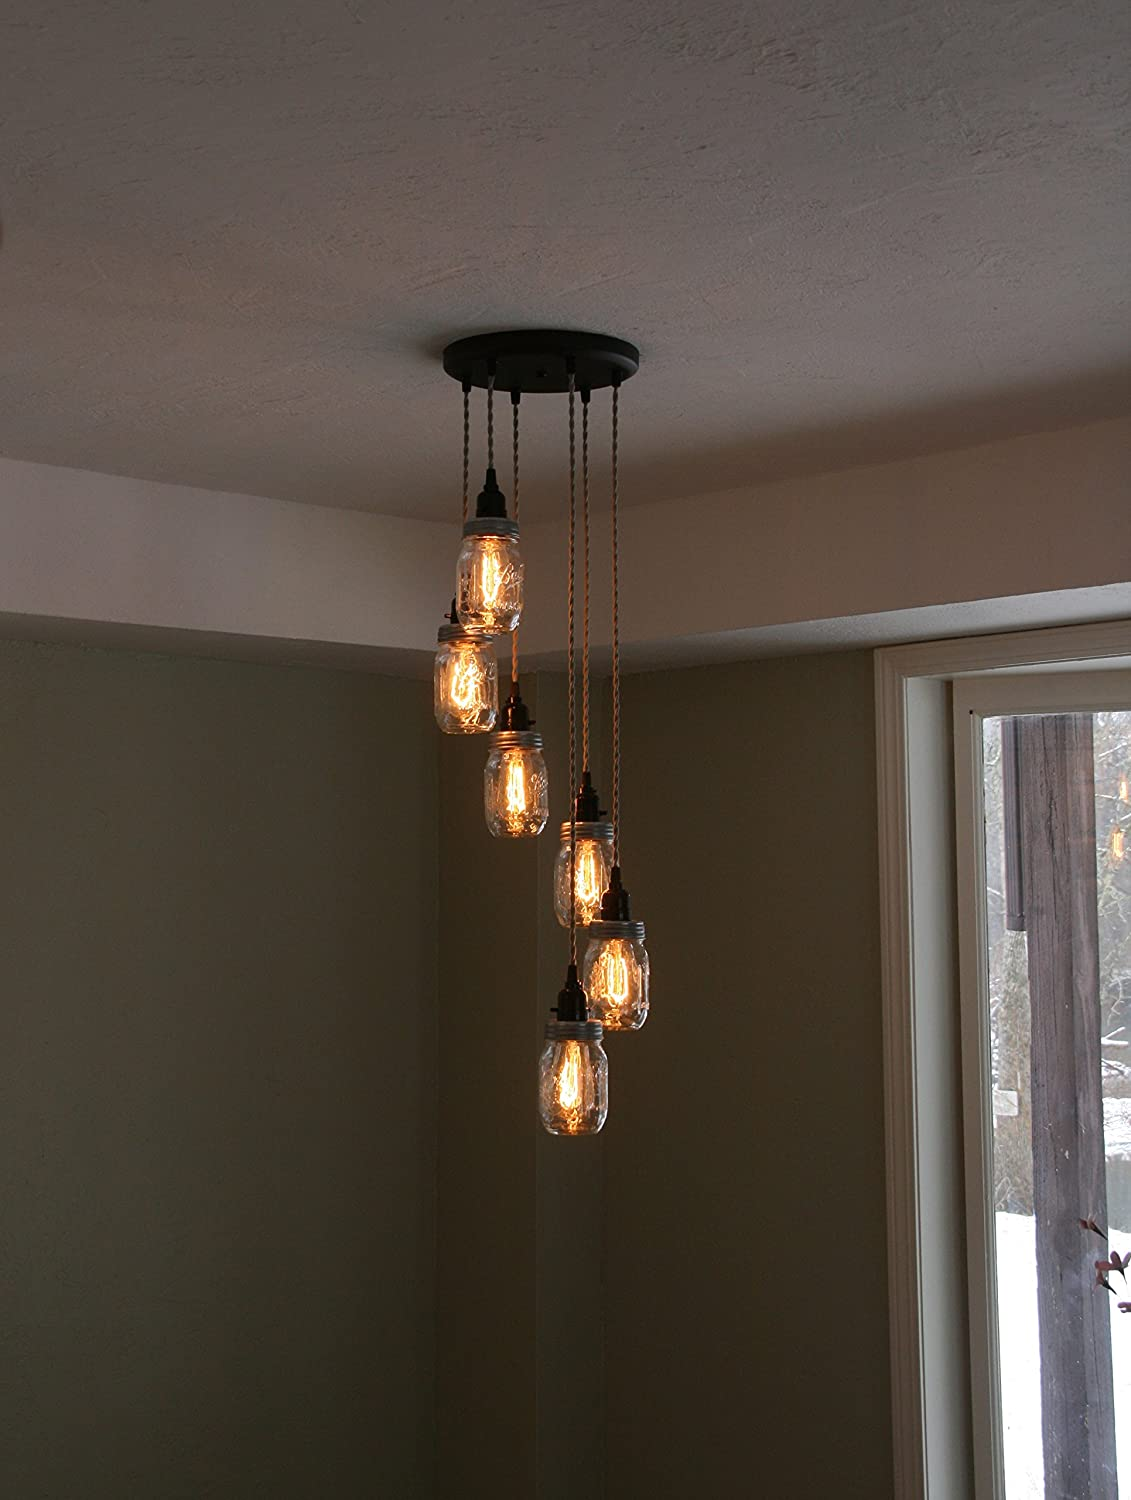 Jar chandelier light 6strand spiral mason jar chandelier on 12 jar chandelier light 6strand spiral mason jar chandelier on 12 oil rubbed bronze canopy by industrial rewind amazon arubaitofo Gallery